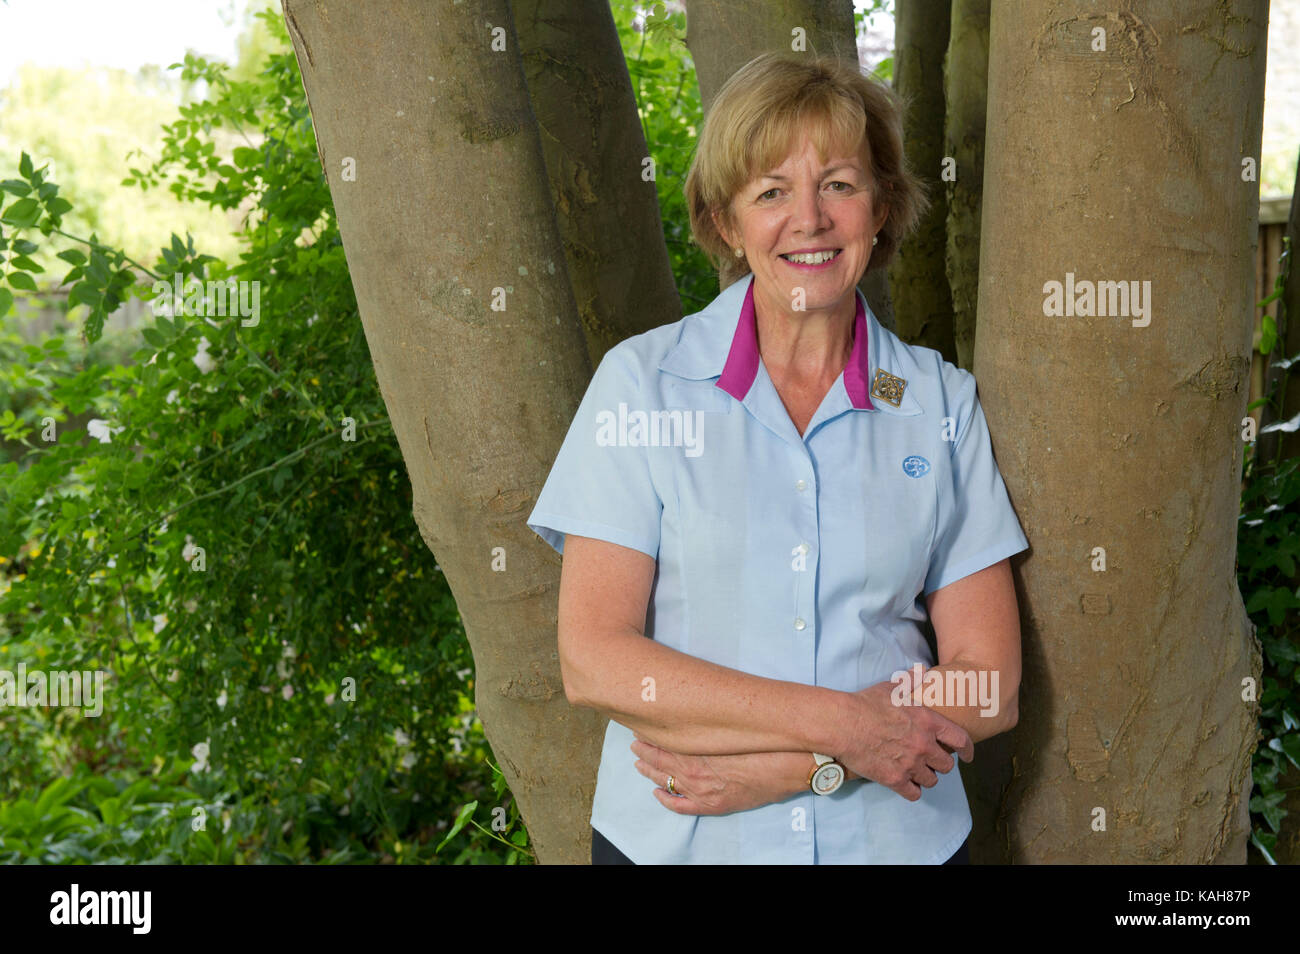 Gill Slocombe, Head Guide. - Stock Image